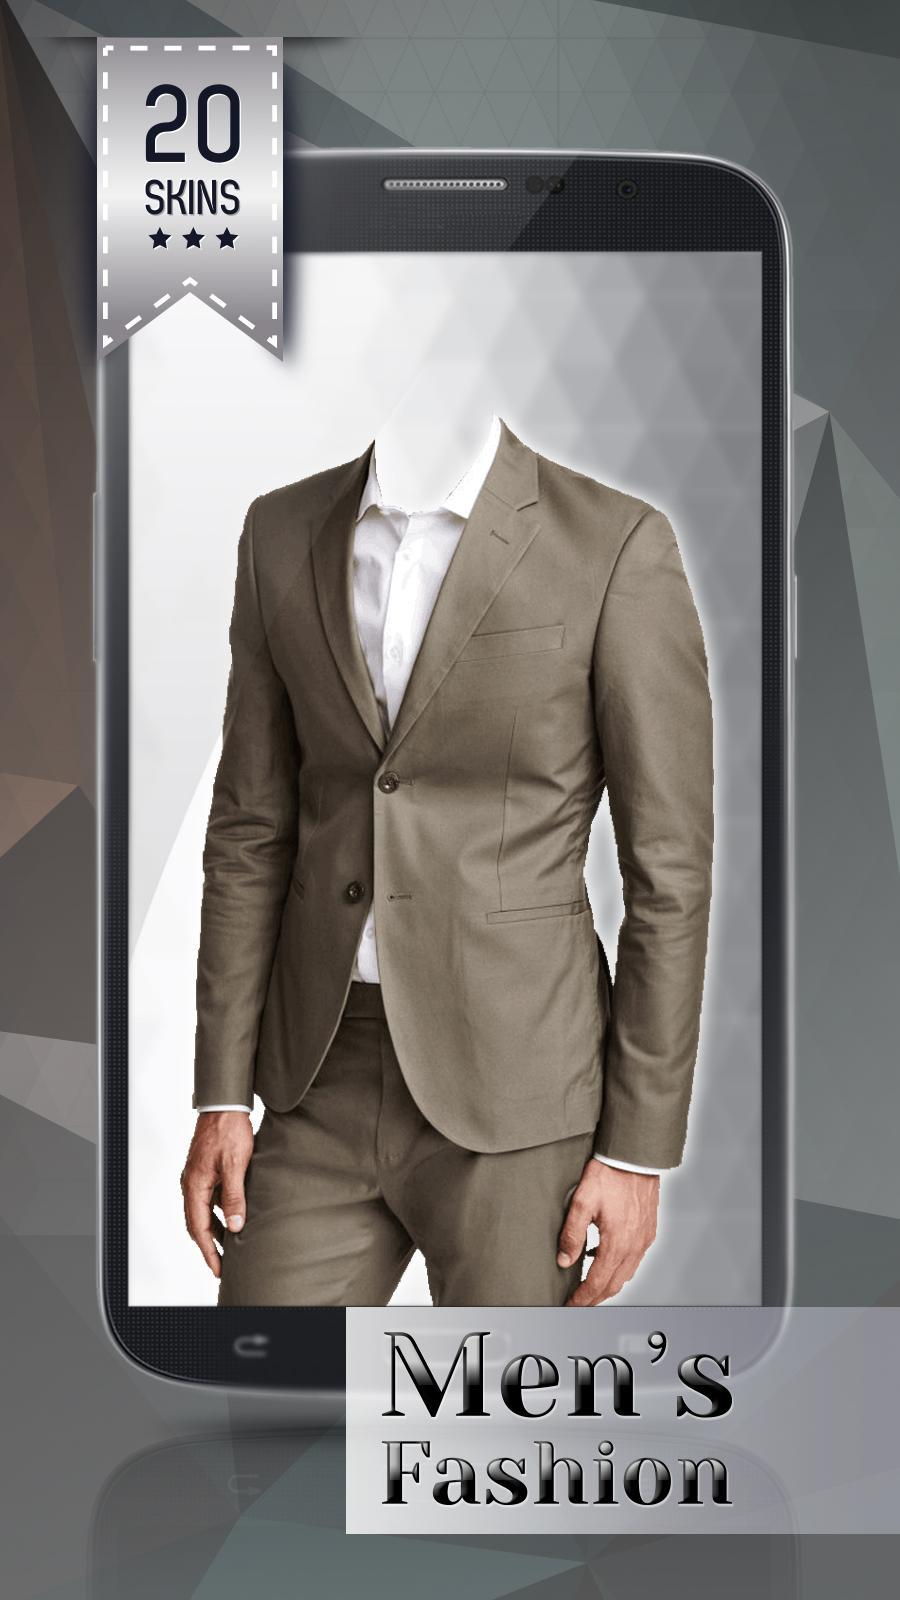 b2468d5b Men's Fashion and Style for Android - APK Download